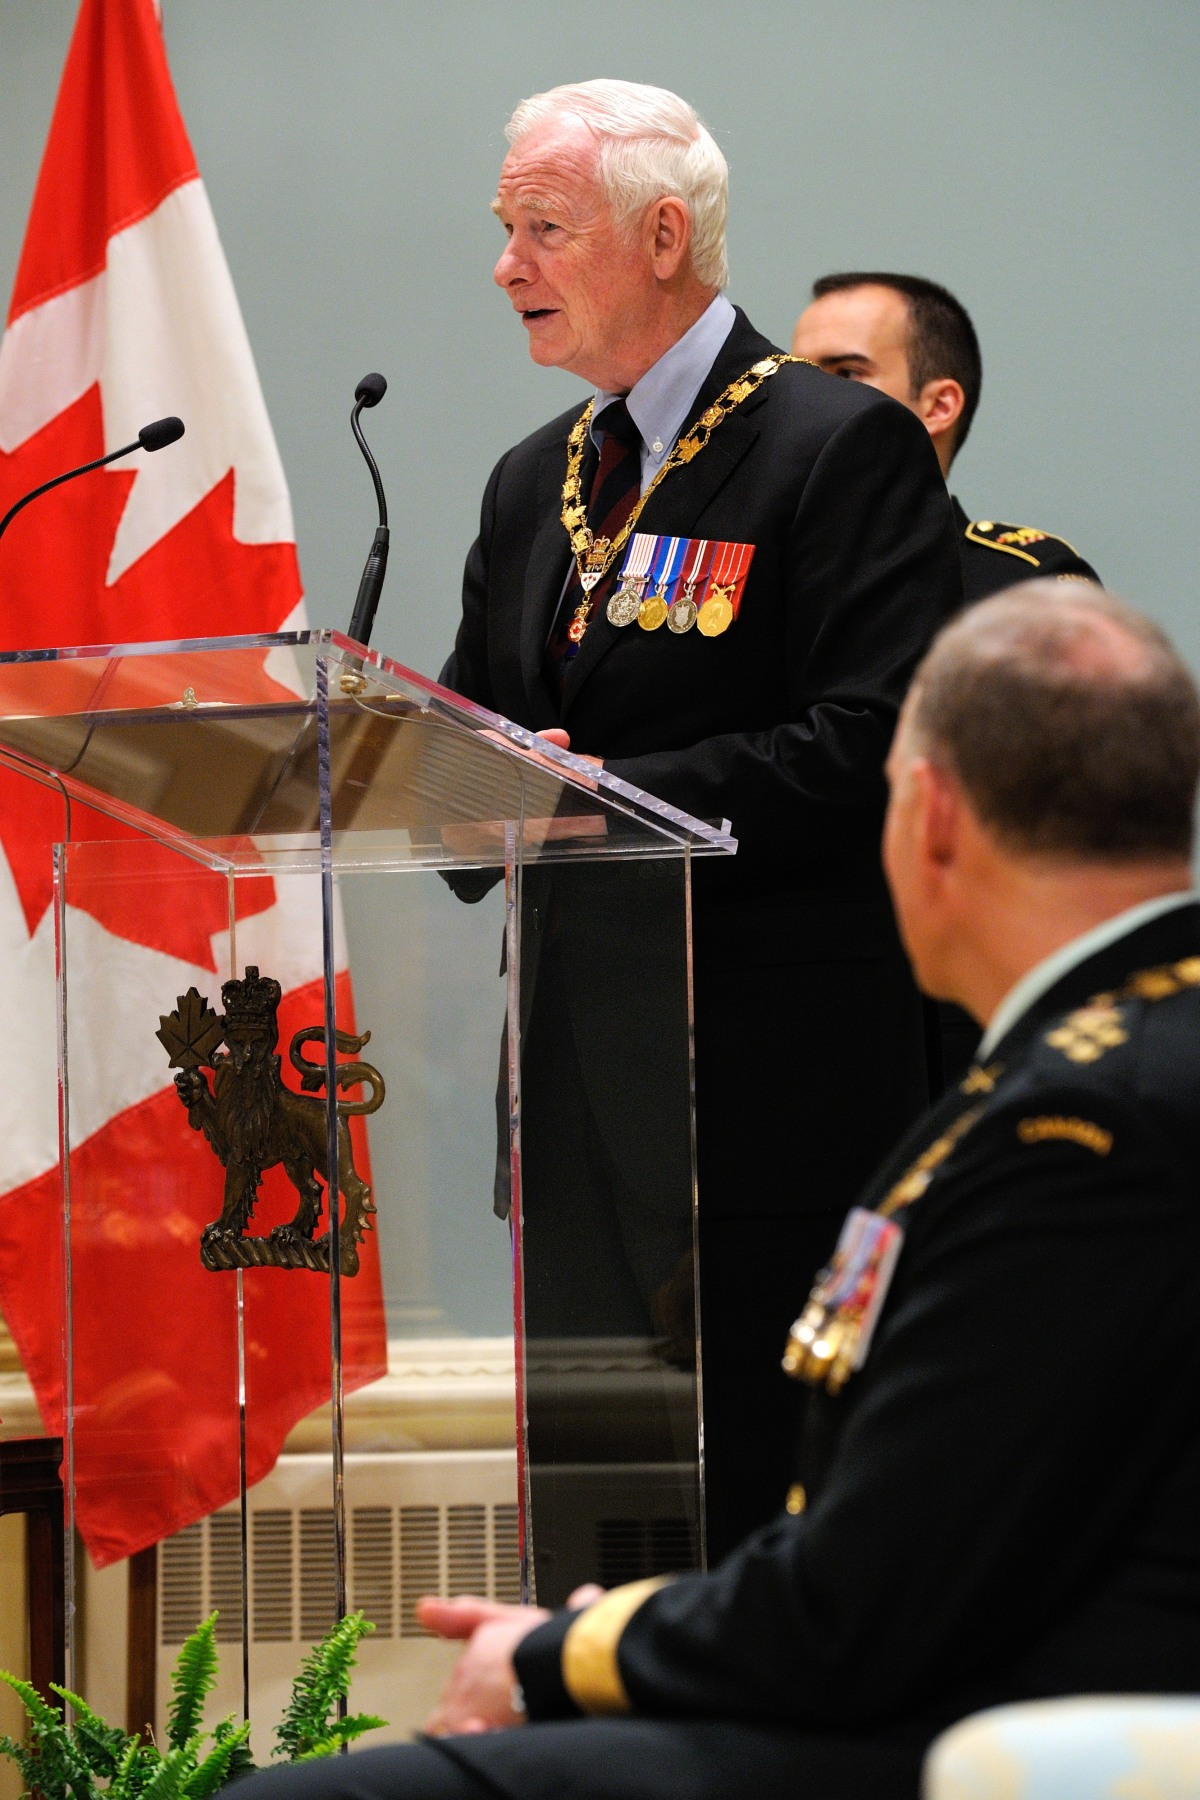 """Over the past four decades, many of Canada's finest servicemen and women have been invested into the Order of Military Merit,"" said His Excellency. ""And as it did for them, this honour speaks to the confidence your commanding officers and your country have in you. We are truly fortunate to have you in uniform."""